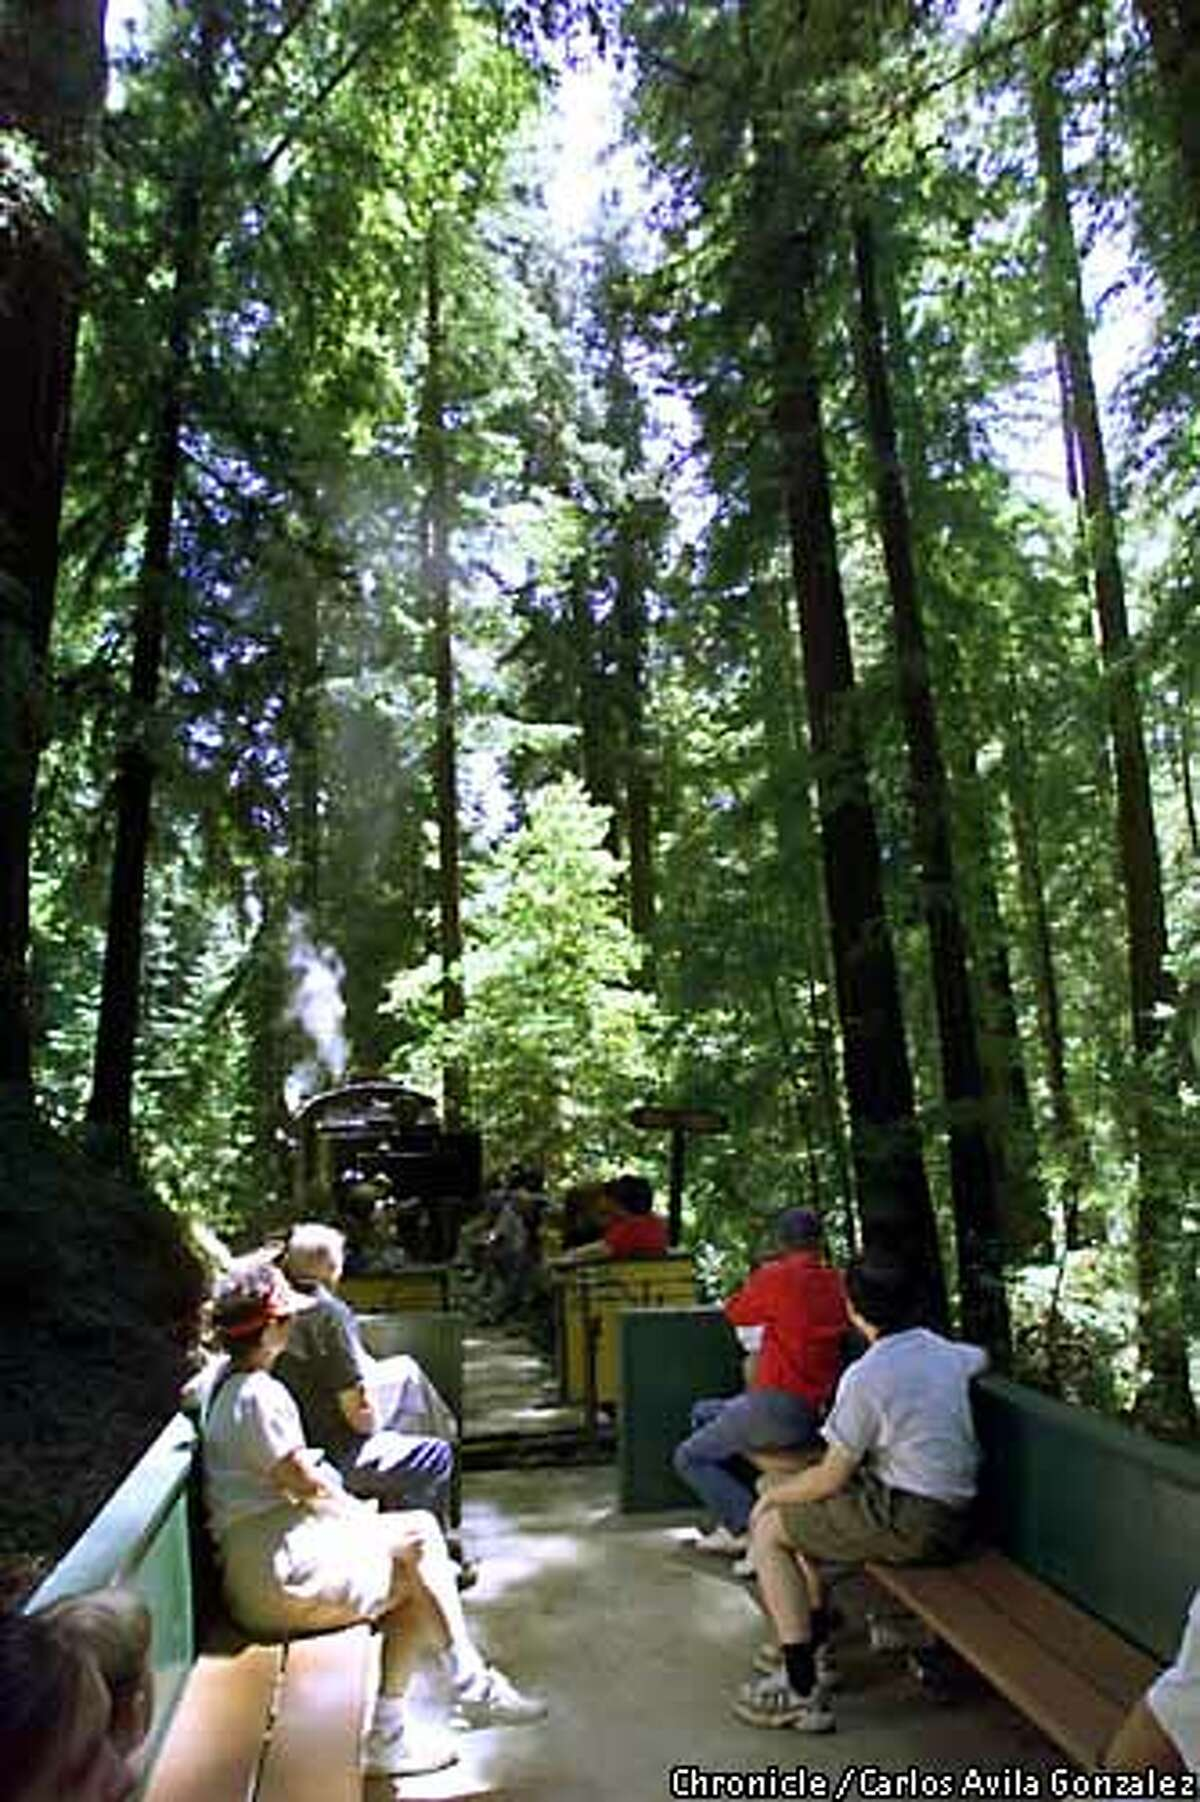 ROARING CAMP AND BIG TREES RAILROAD / Visitors to Roaring Camp in Felton, Ca., get a splendid view of the redwood forest of the Santa Cruz Mountains from Engine # 7 on Thursday, July 15, 1999. (CARLOS AVILA GONZALEZ/SAN FRANCISCO CHRONICLE) ALSO RAN: 08/13/1999 (CF,CC4) 09/03/1999 (PF,PN6)